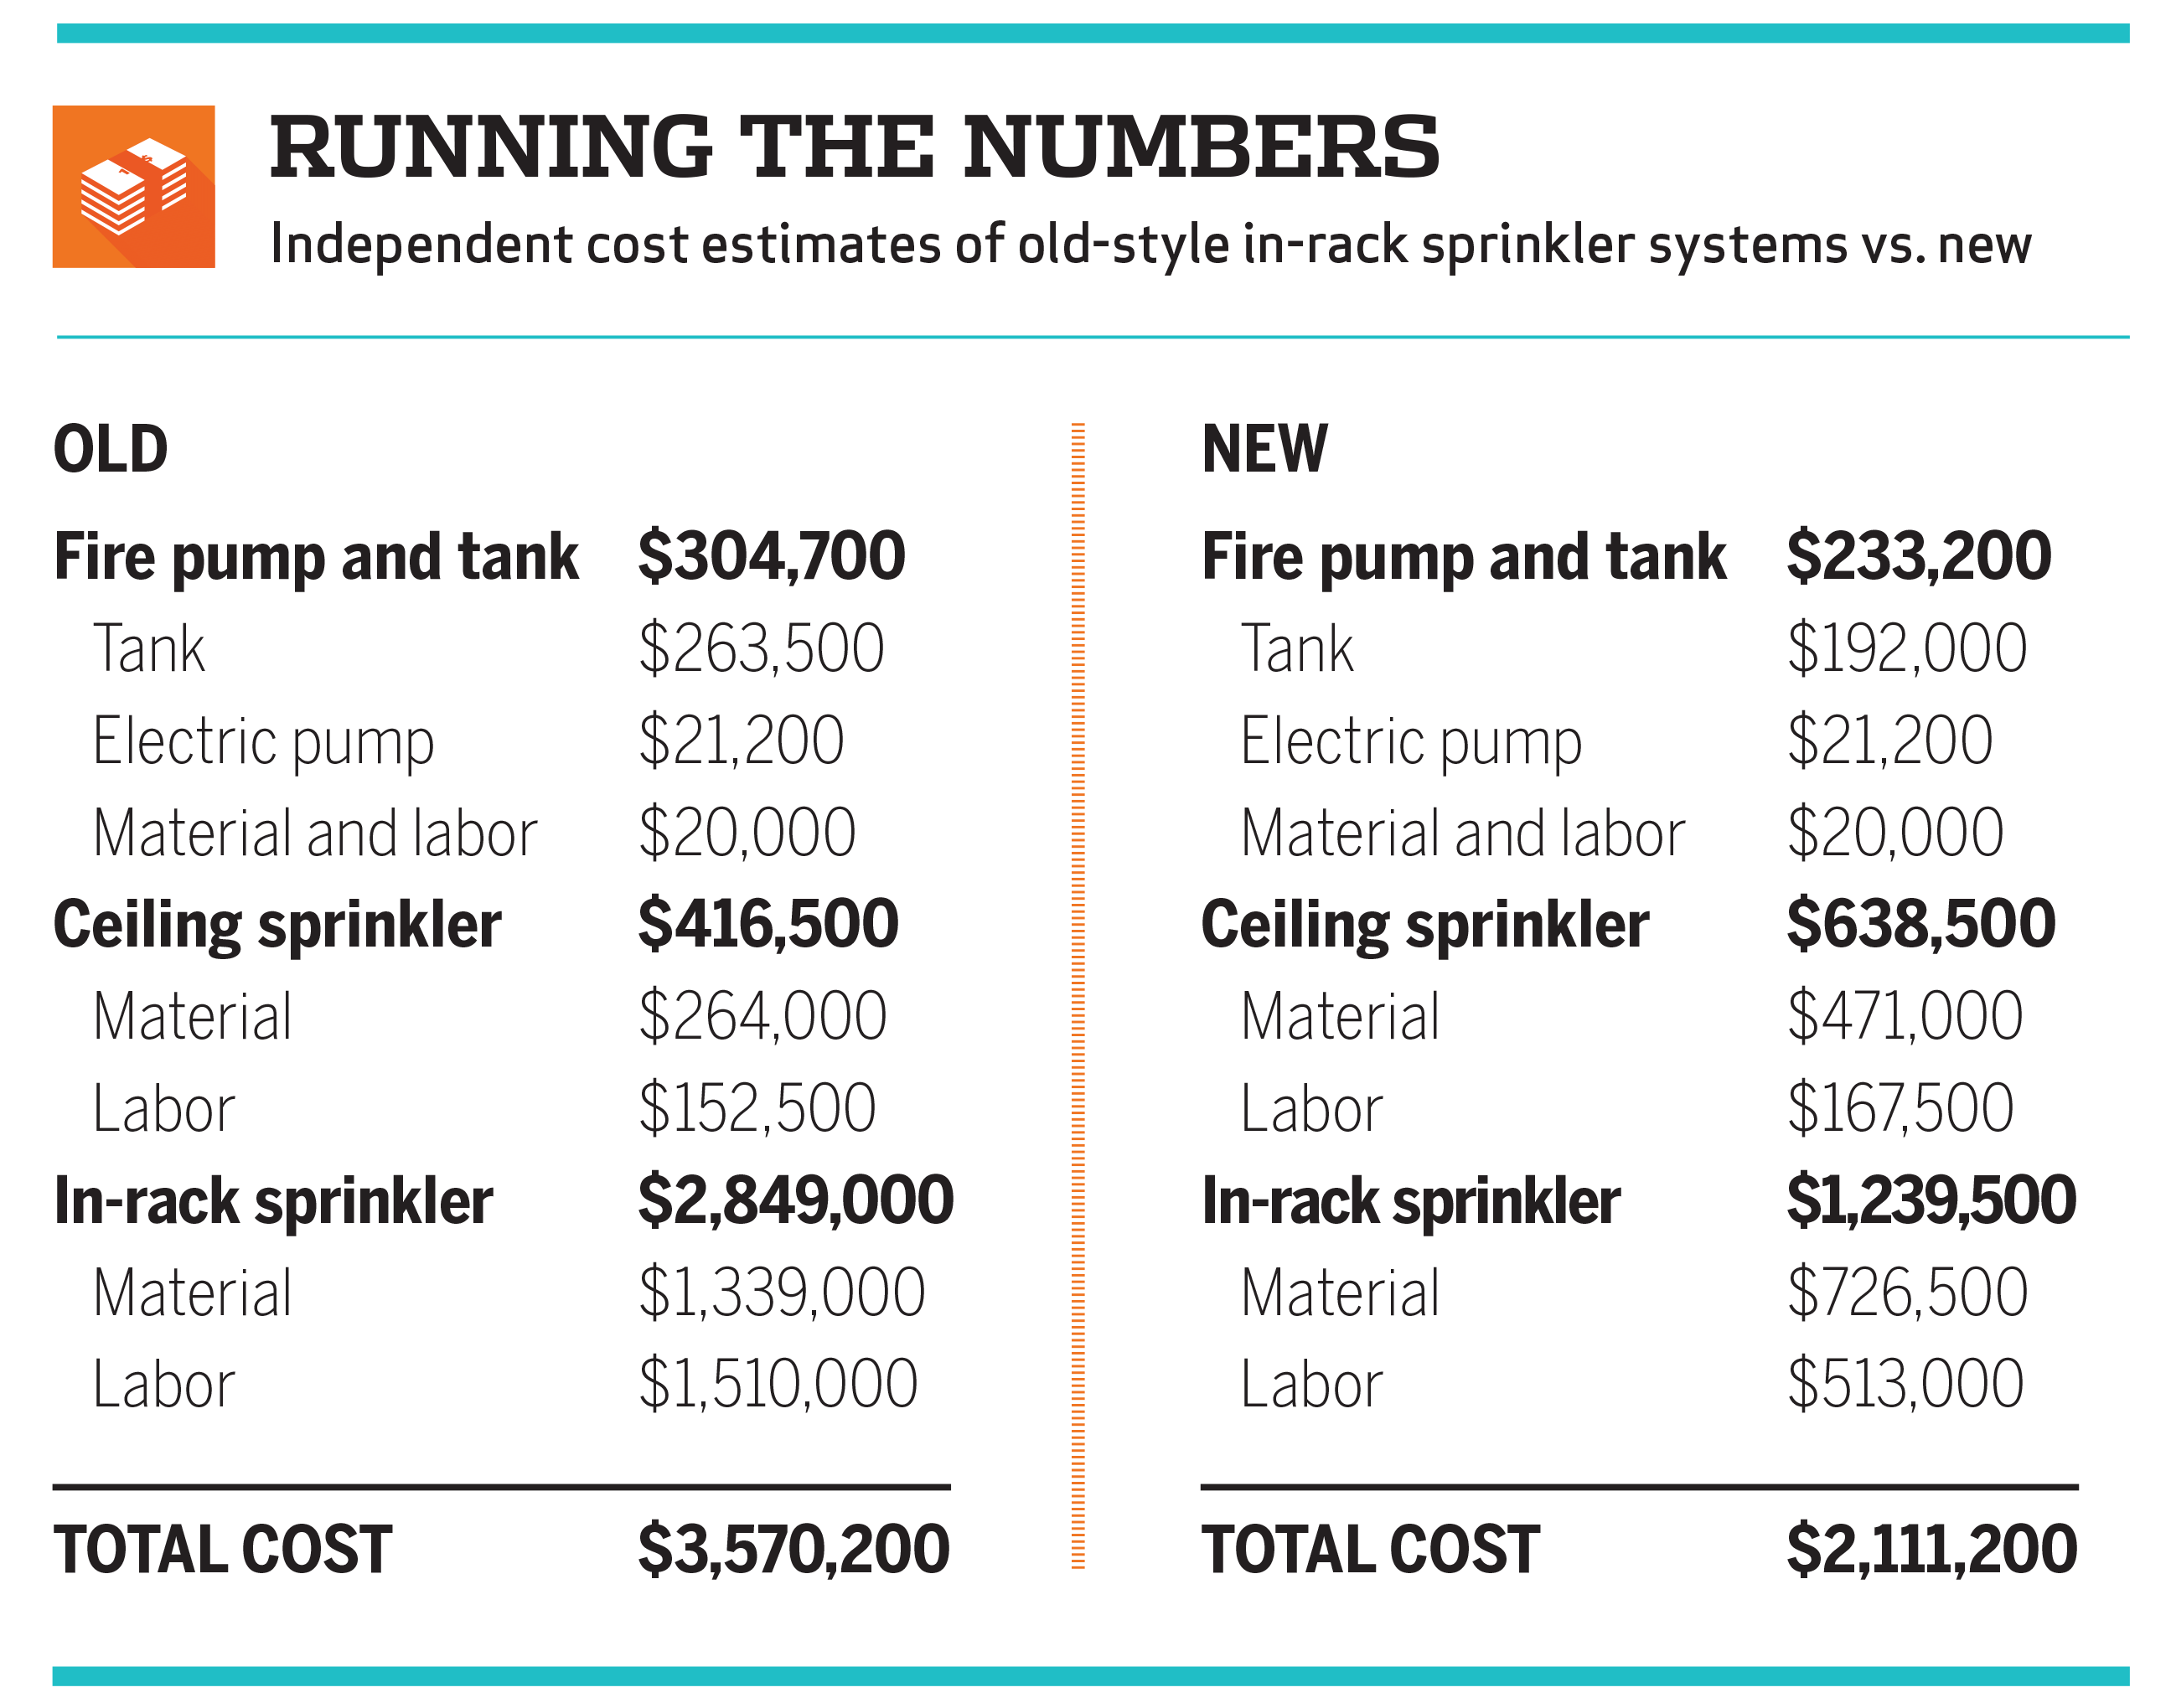 Chart breaking down the cost estimates of the old-style in-rack sprinkler systems vs. new